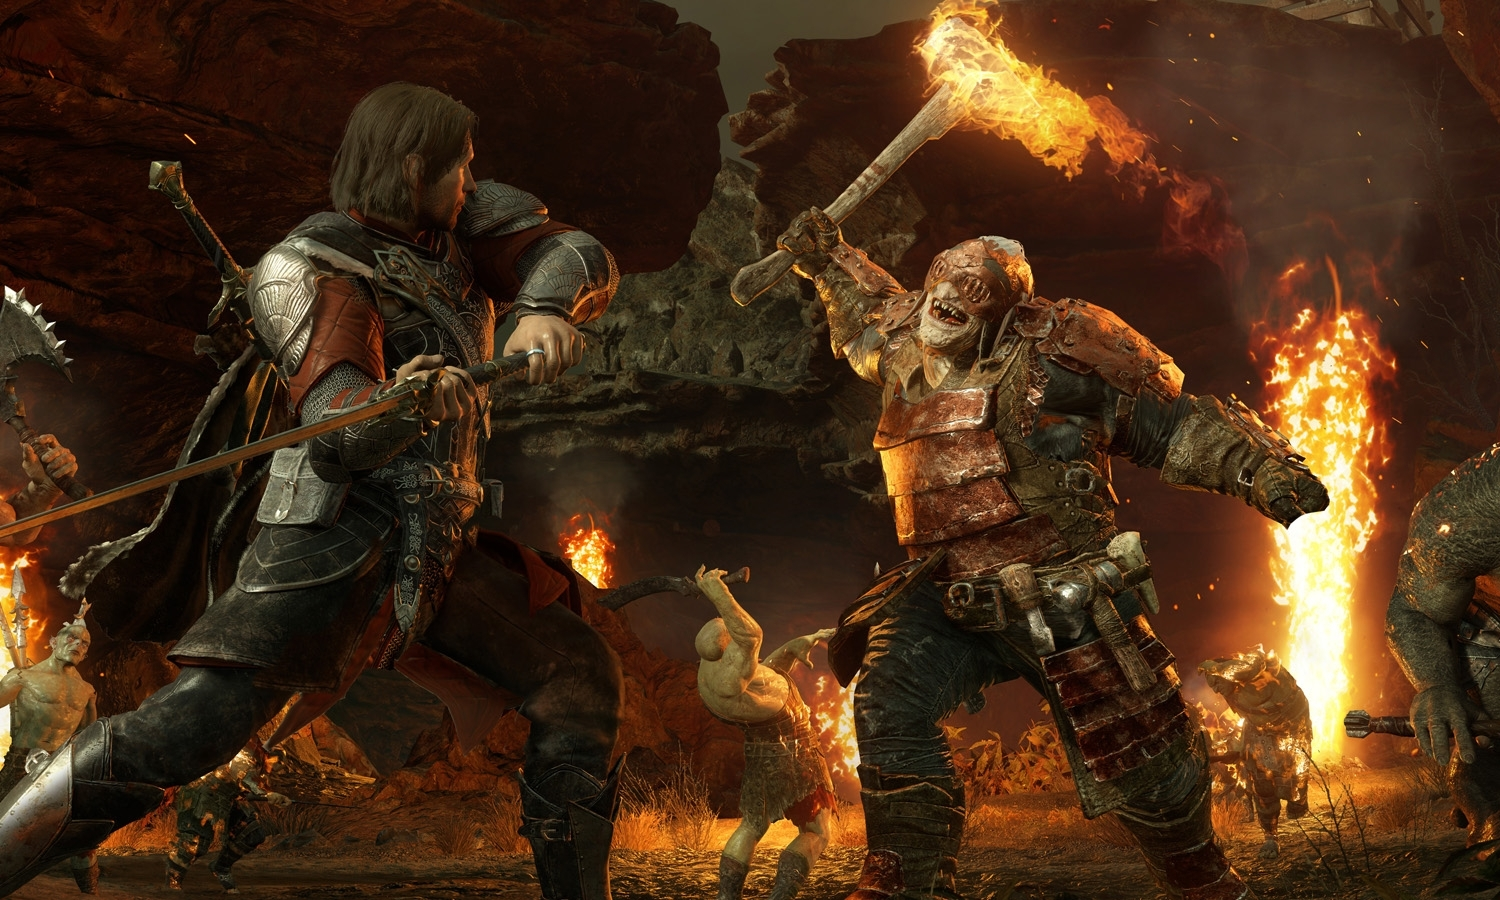 Middle-earth: Shadow of War has been cracked already